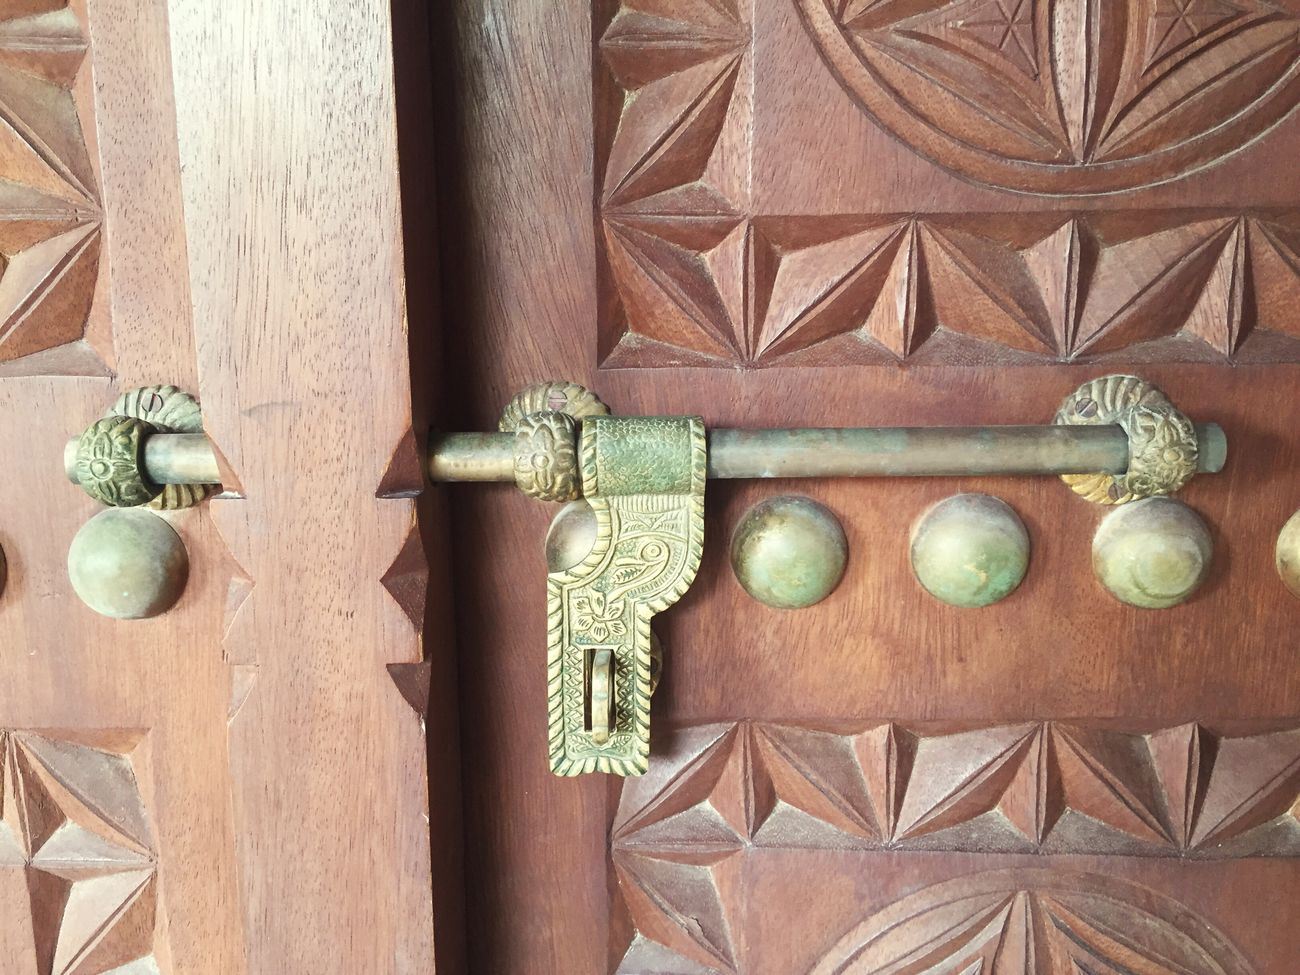 Fort door Locker Door Doors Locker Locker Room Locker Easy Locked Lockers Golden Golden Locks Bronce Bronceado Bronze Bronzer  Bronzed Wooden Wooden Door Wooden Doors Beautiful Door Beautiful Old Antique Al Ain Palace Al Ain Palace Abu Dhabi UAE